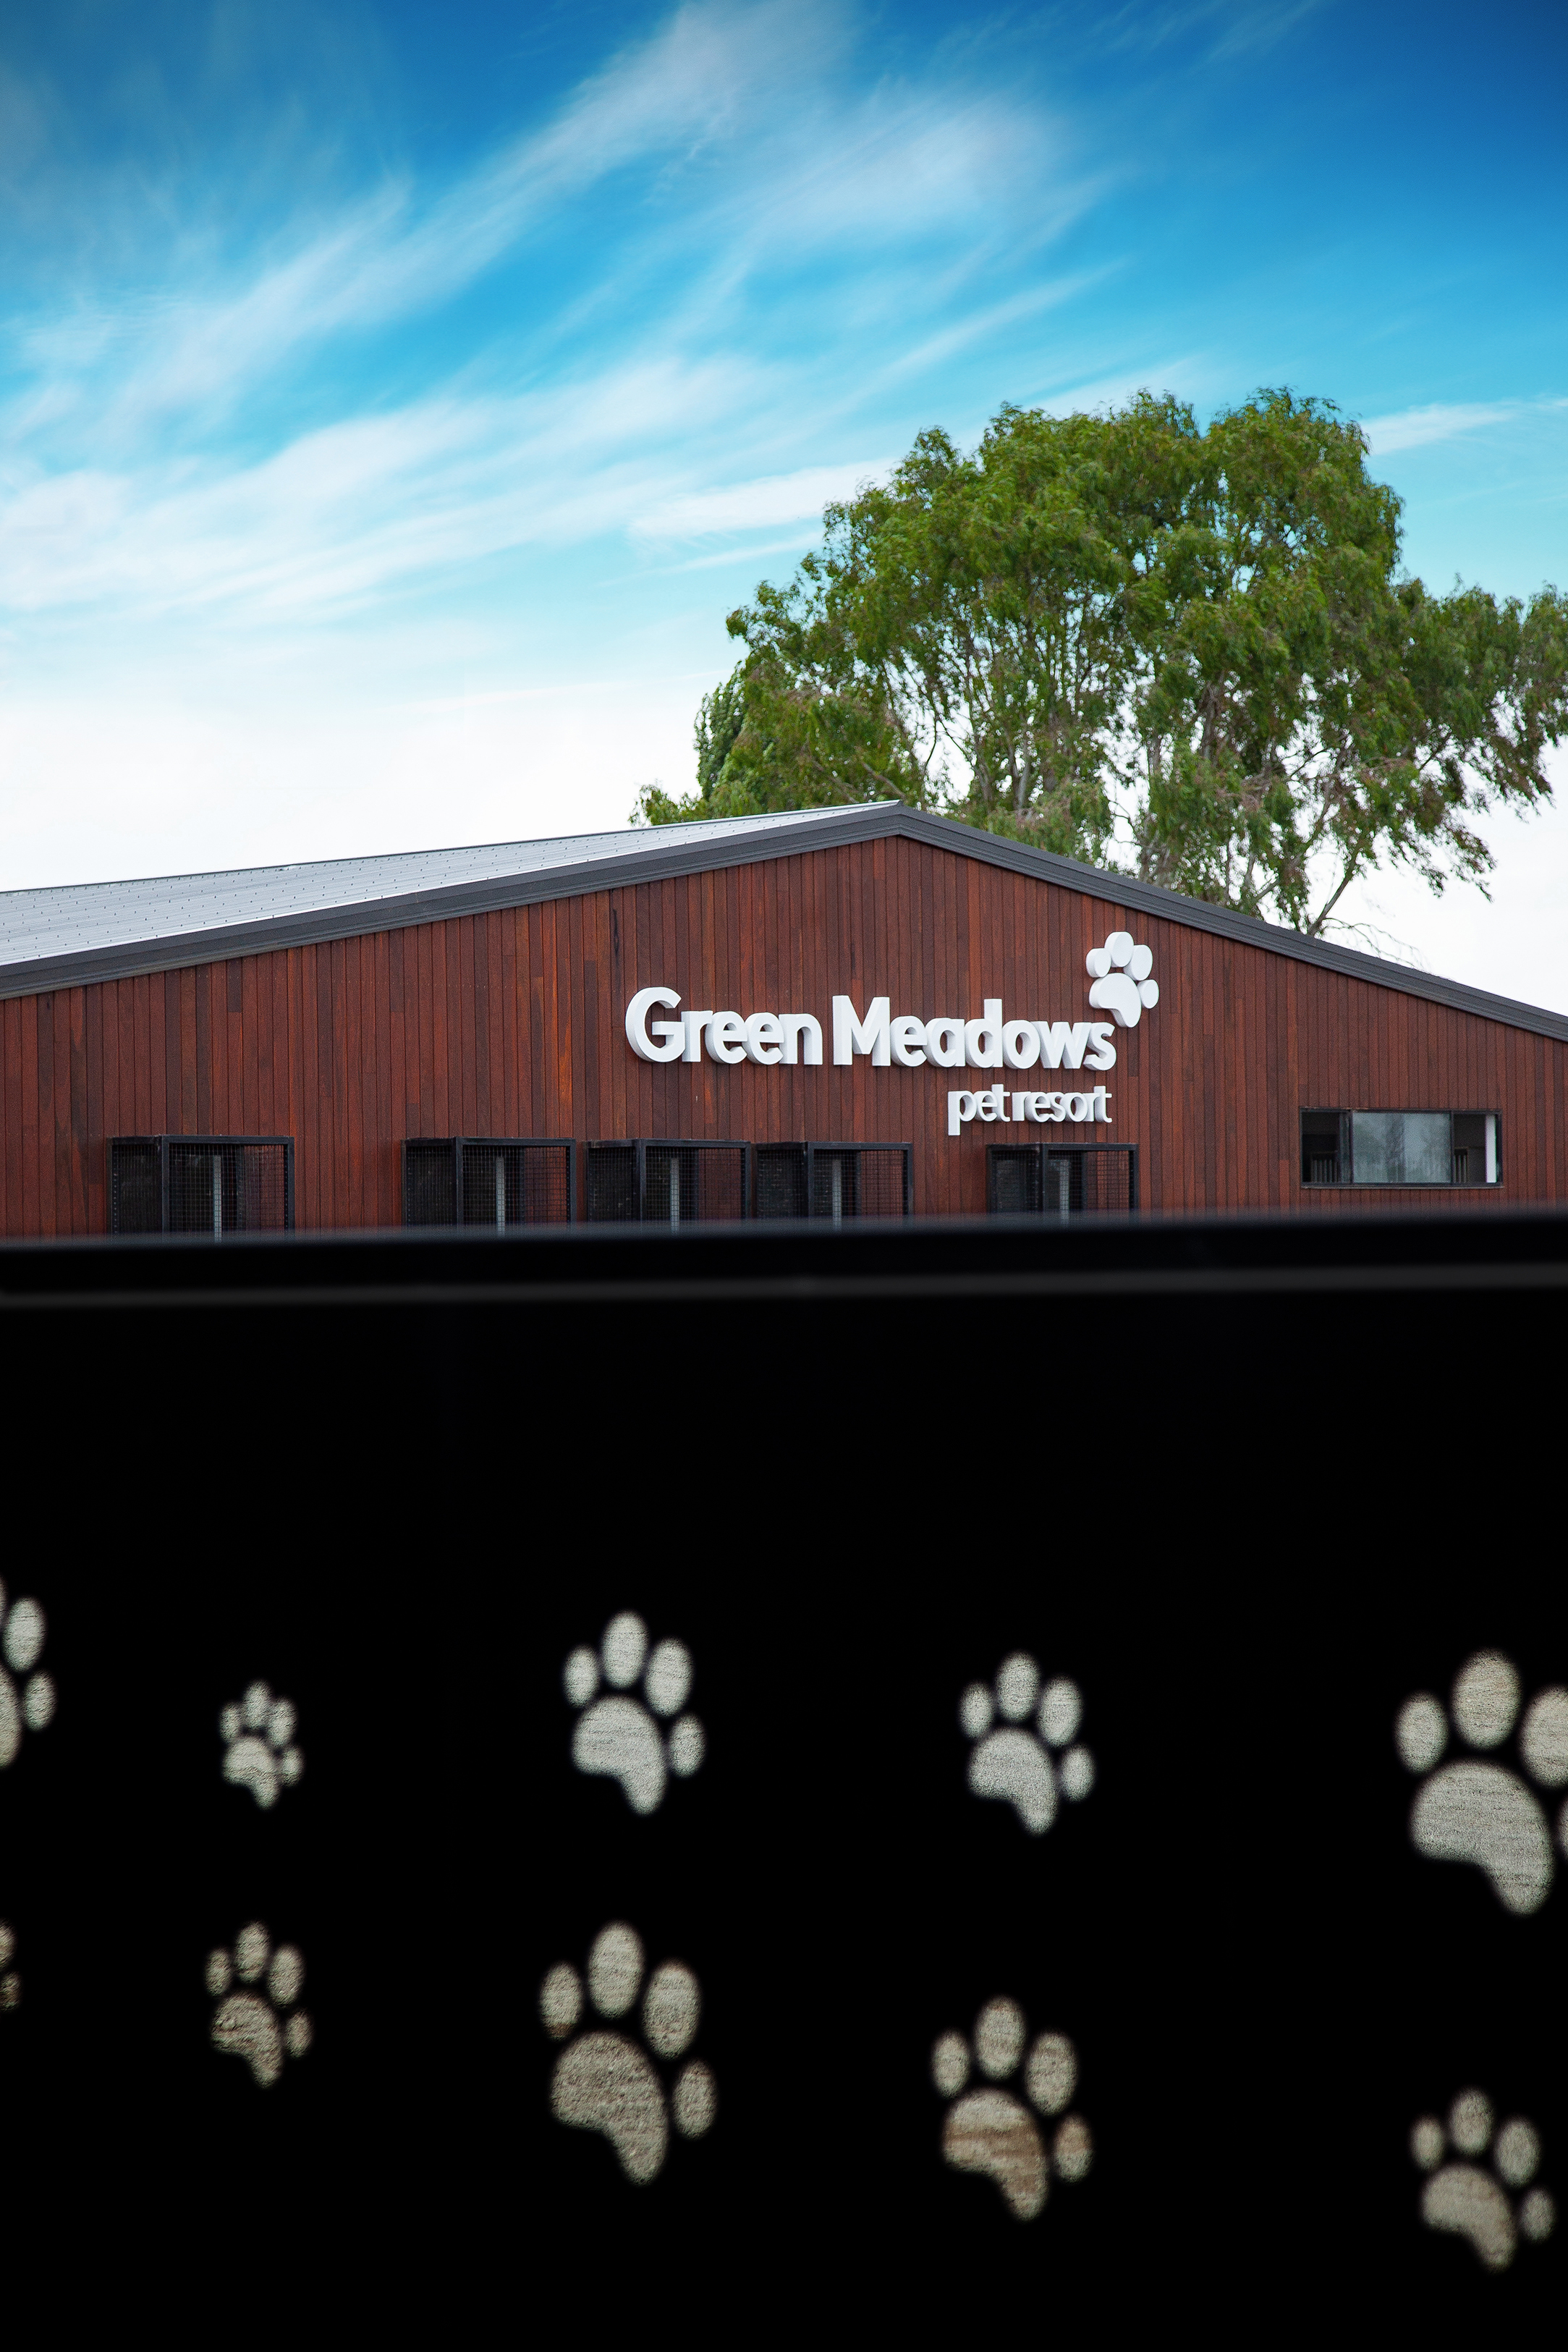 Green Meadows Pet Resort Exterior